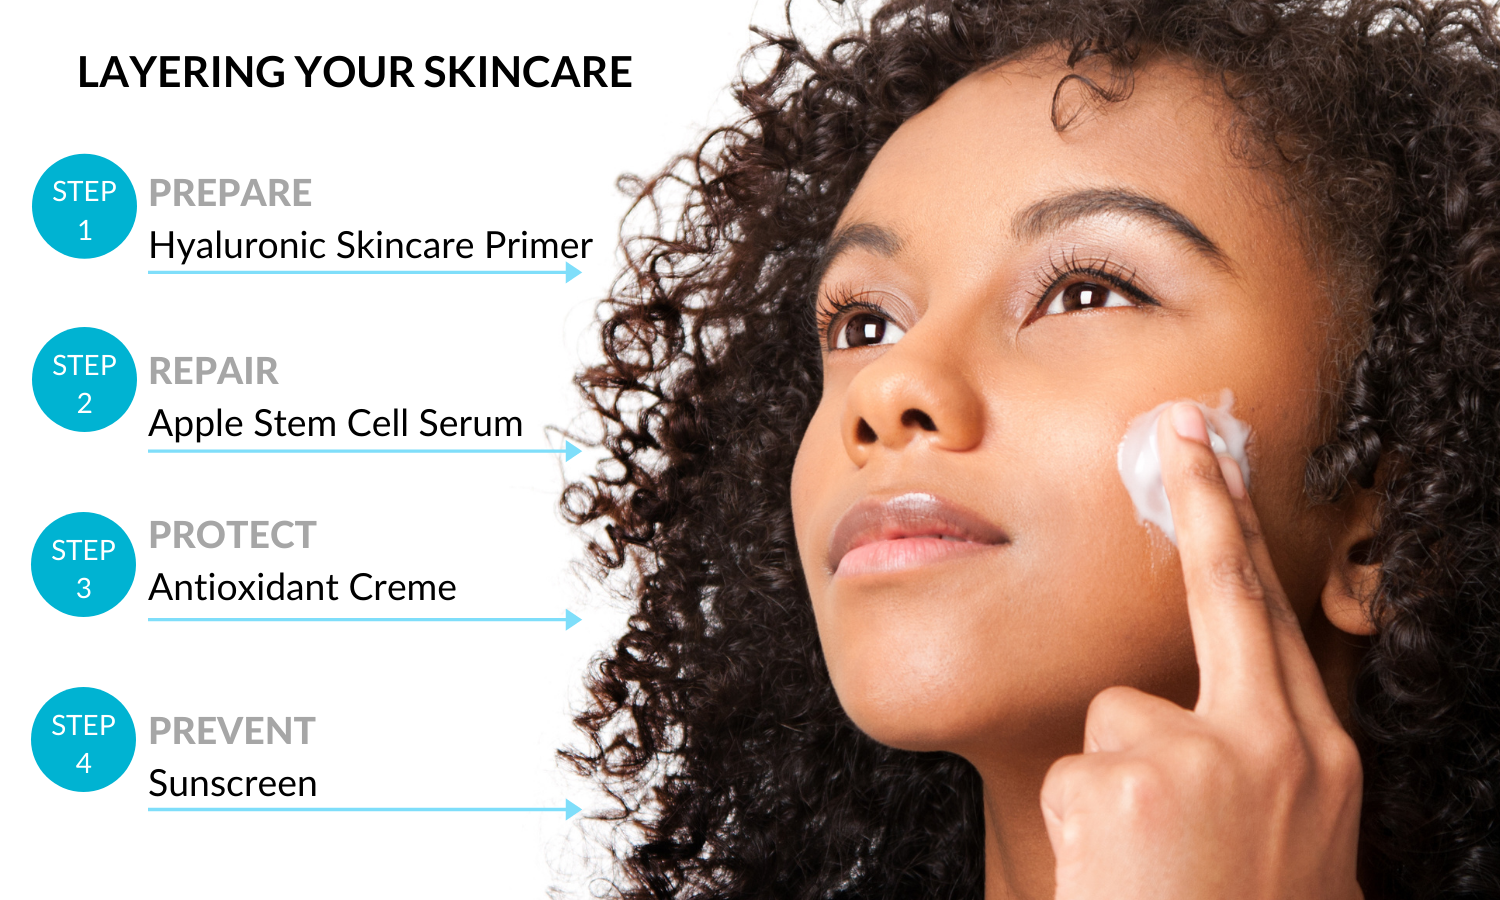 Treat your combo skin the right way!